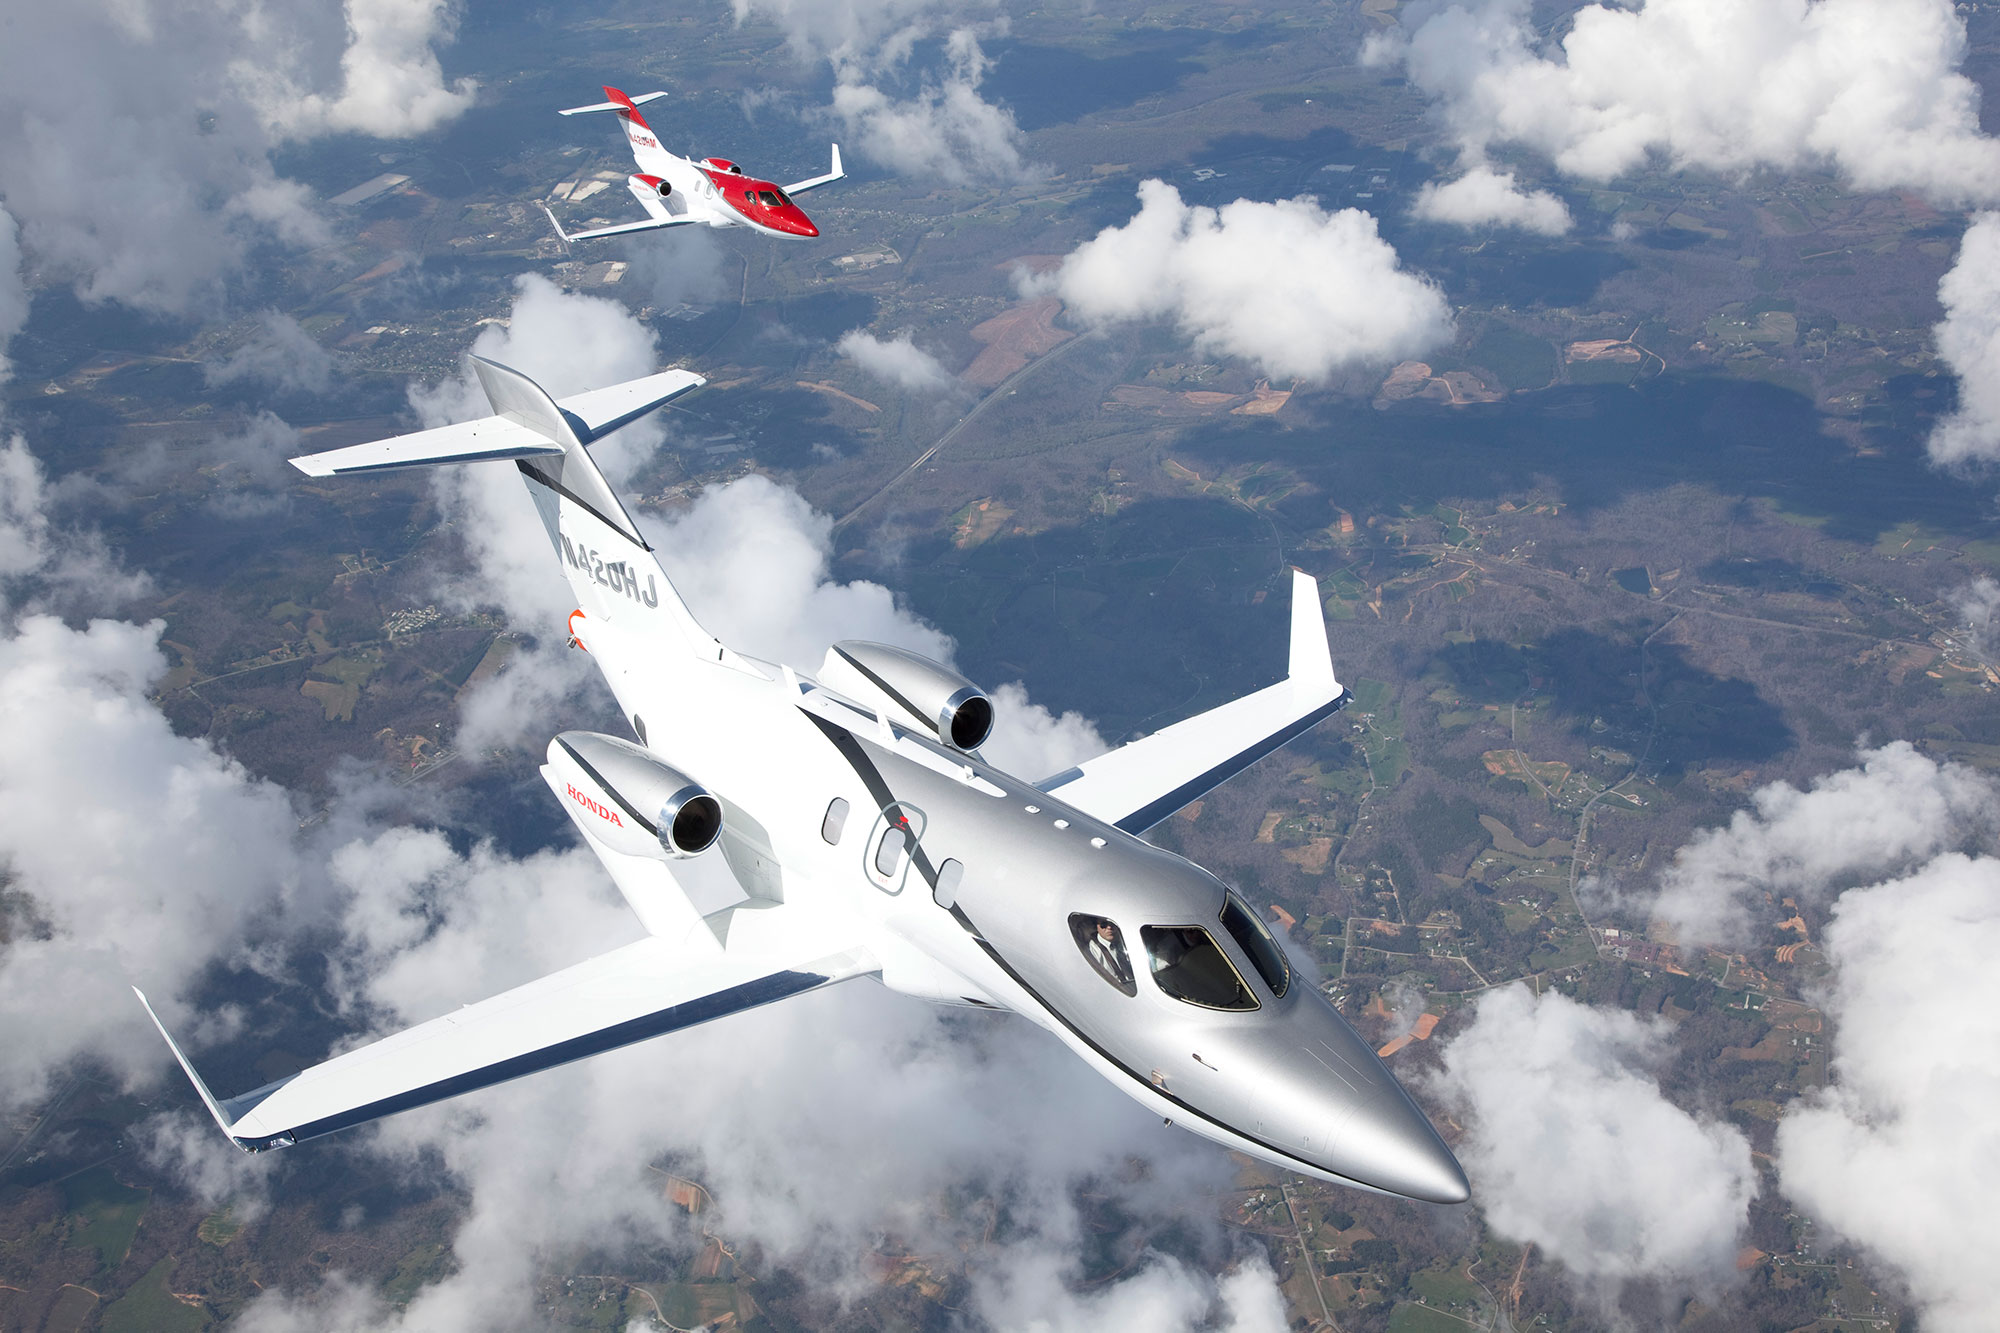 North Carolina Flies High to Become 4th Most-Attractive State for Aerospace Manufacturing